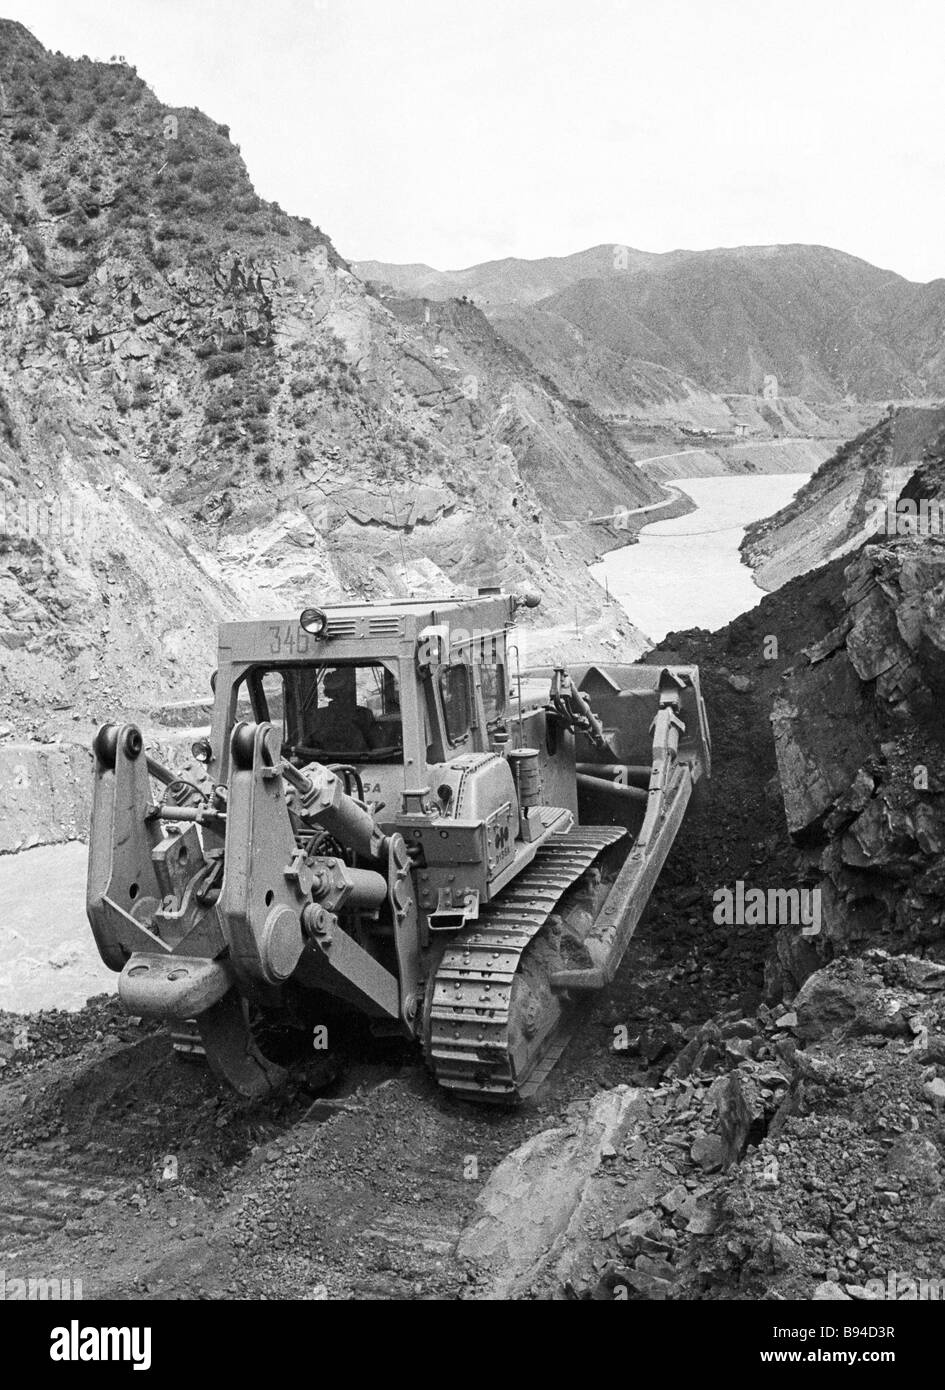 Bulldozer Skalolaz Cliff Hanger expands the Vakhsh River s banks during construction of the Rogun hydro electric - Stock Image